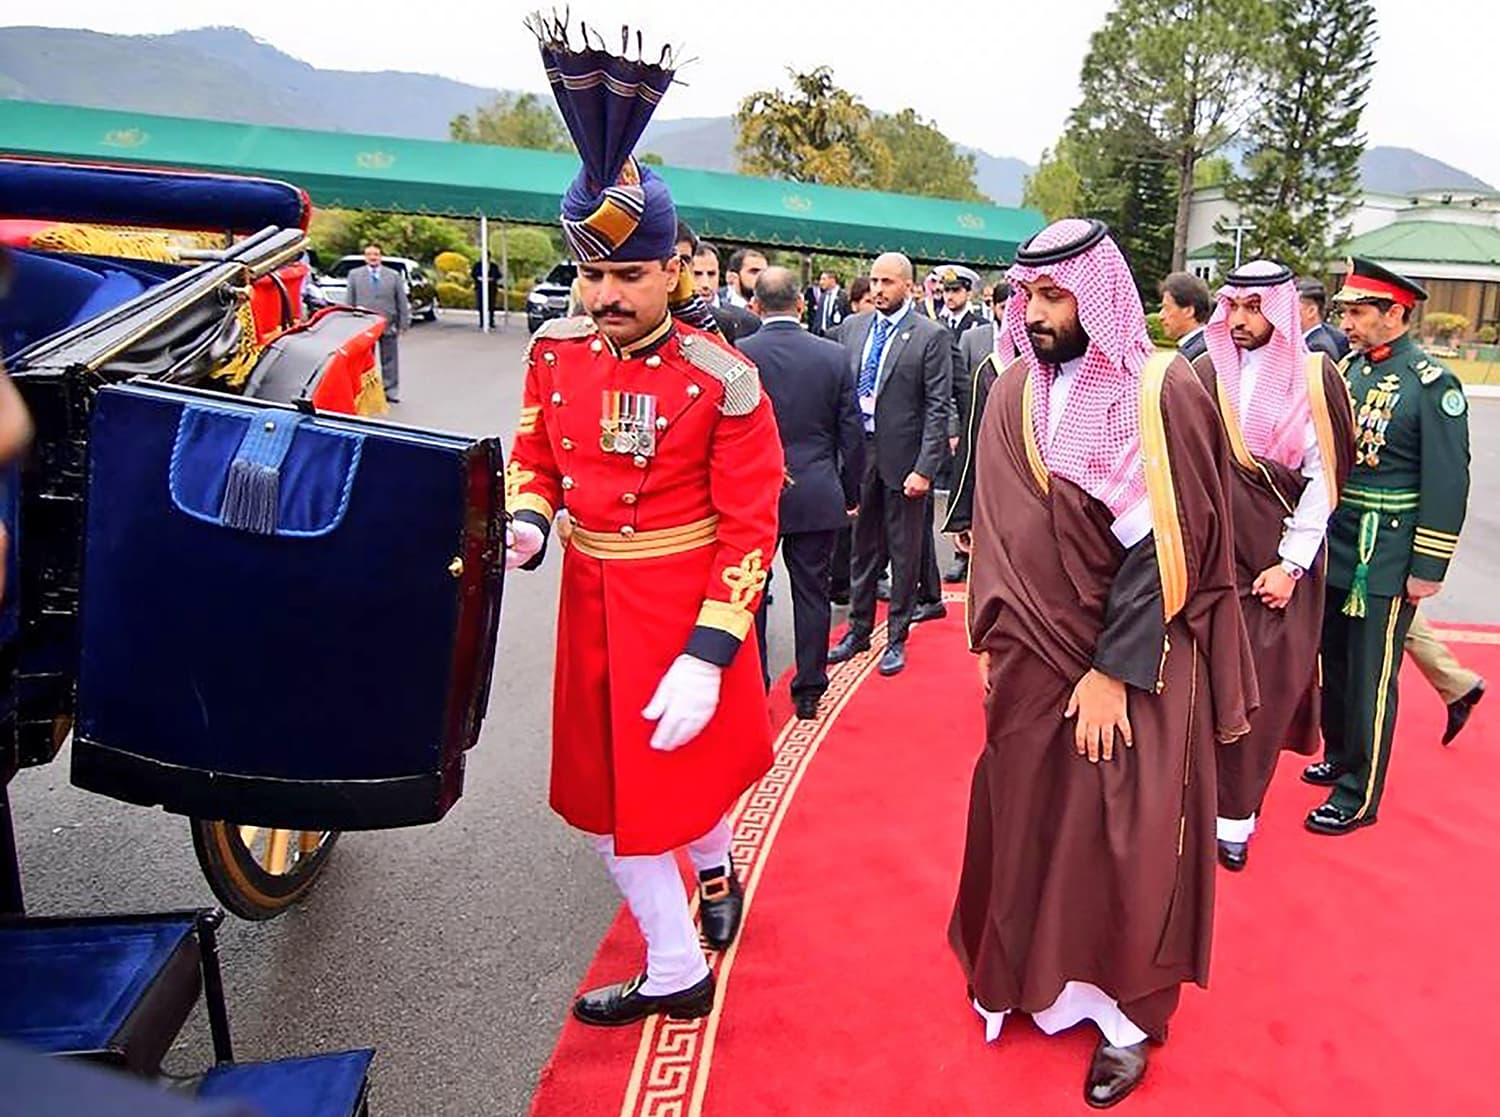 Crown Prince Mohammed bin Salman gets on a horse-drawn carriage to proceed to the President House in Islamabad on Sunday. —AFP